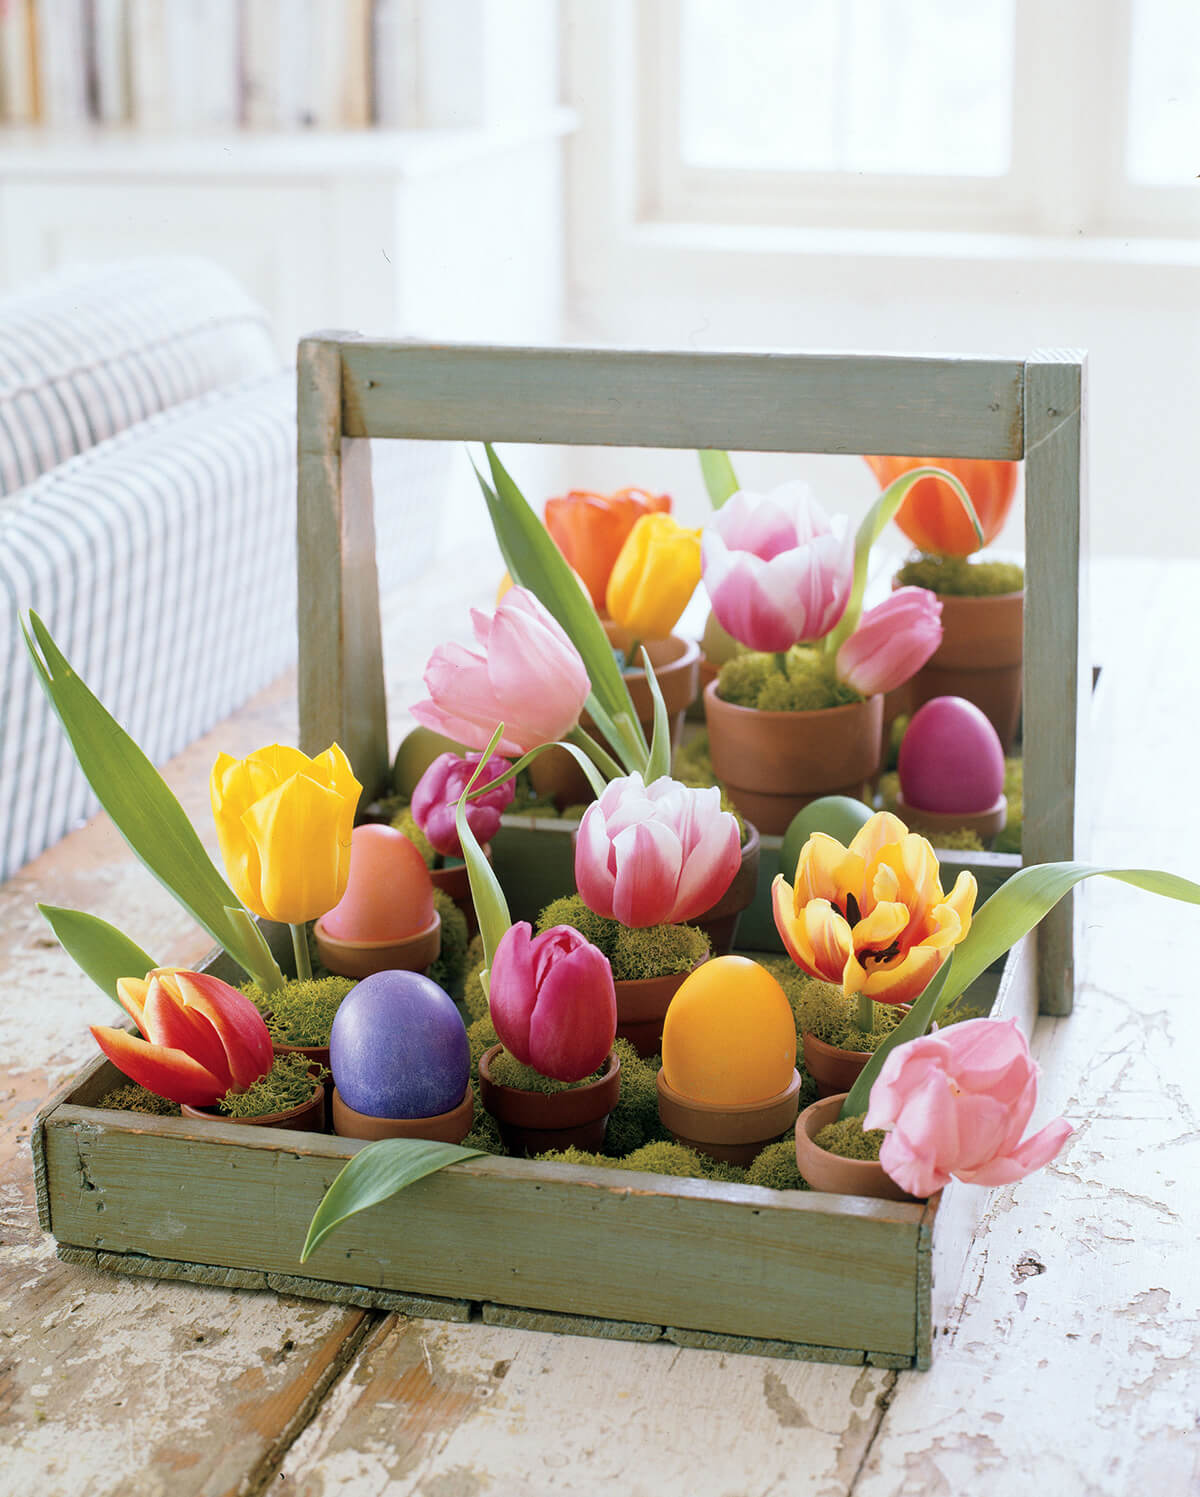 28 Easter Tray Of Potted Eggs And Spring Bulbs